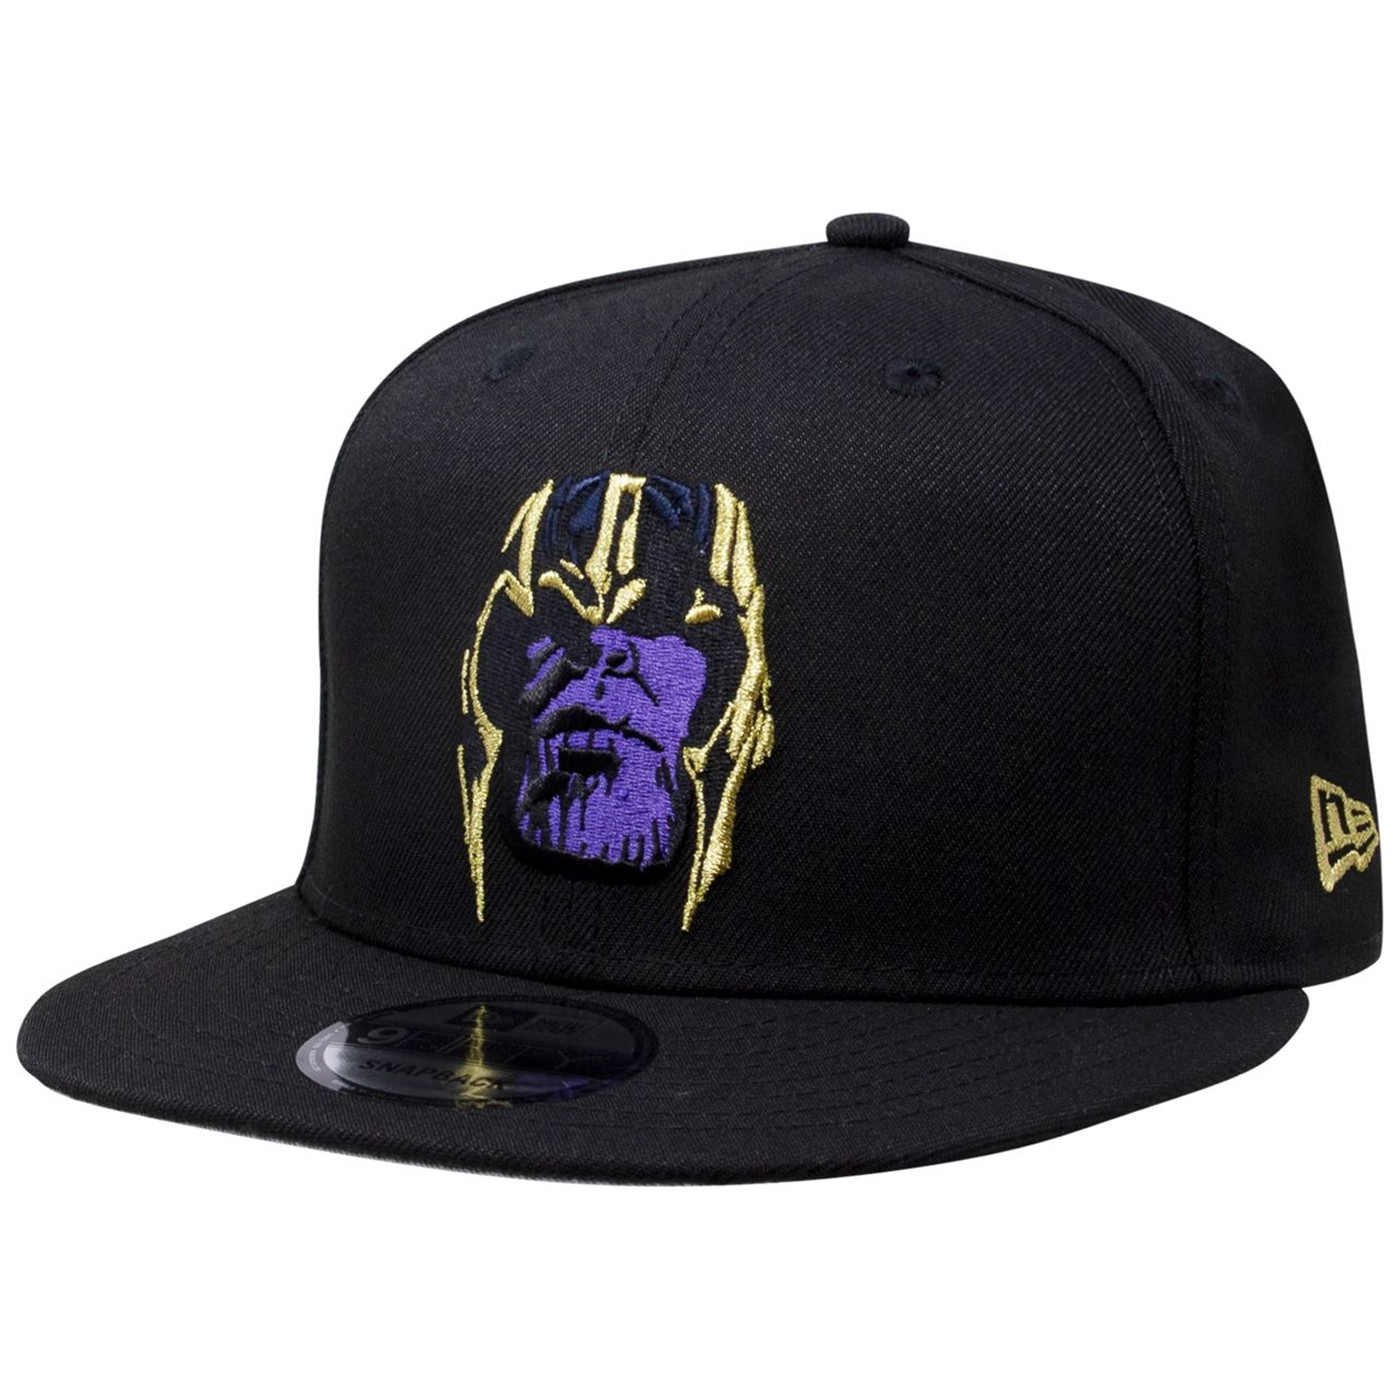 d6d8f96b0 Avengers Endgame Movie Thanos Armored 9Fifty Adjustable Hat